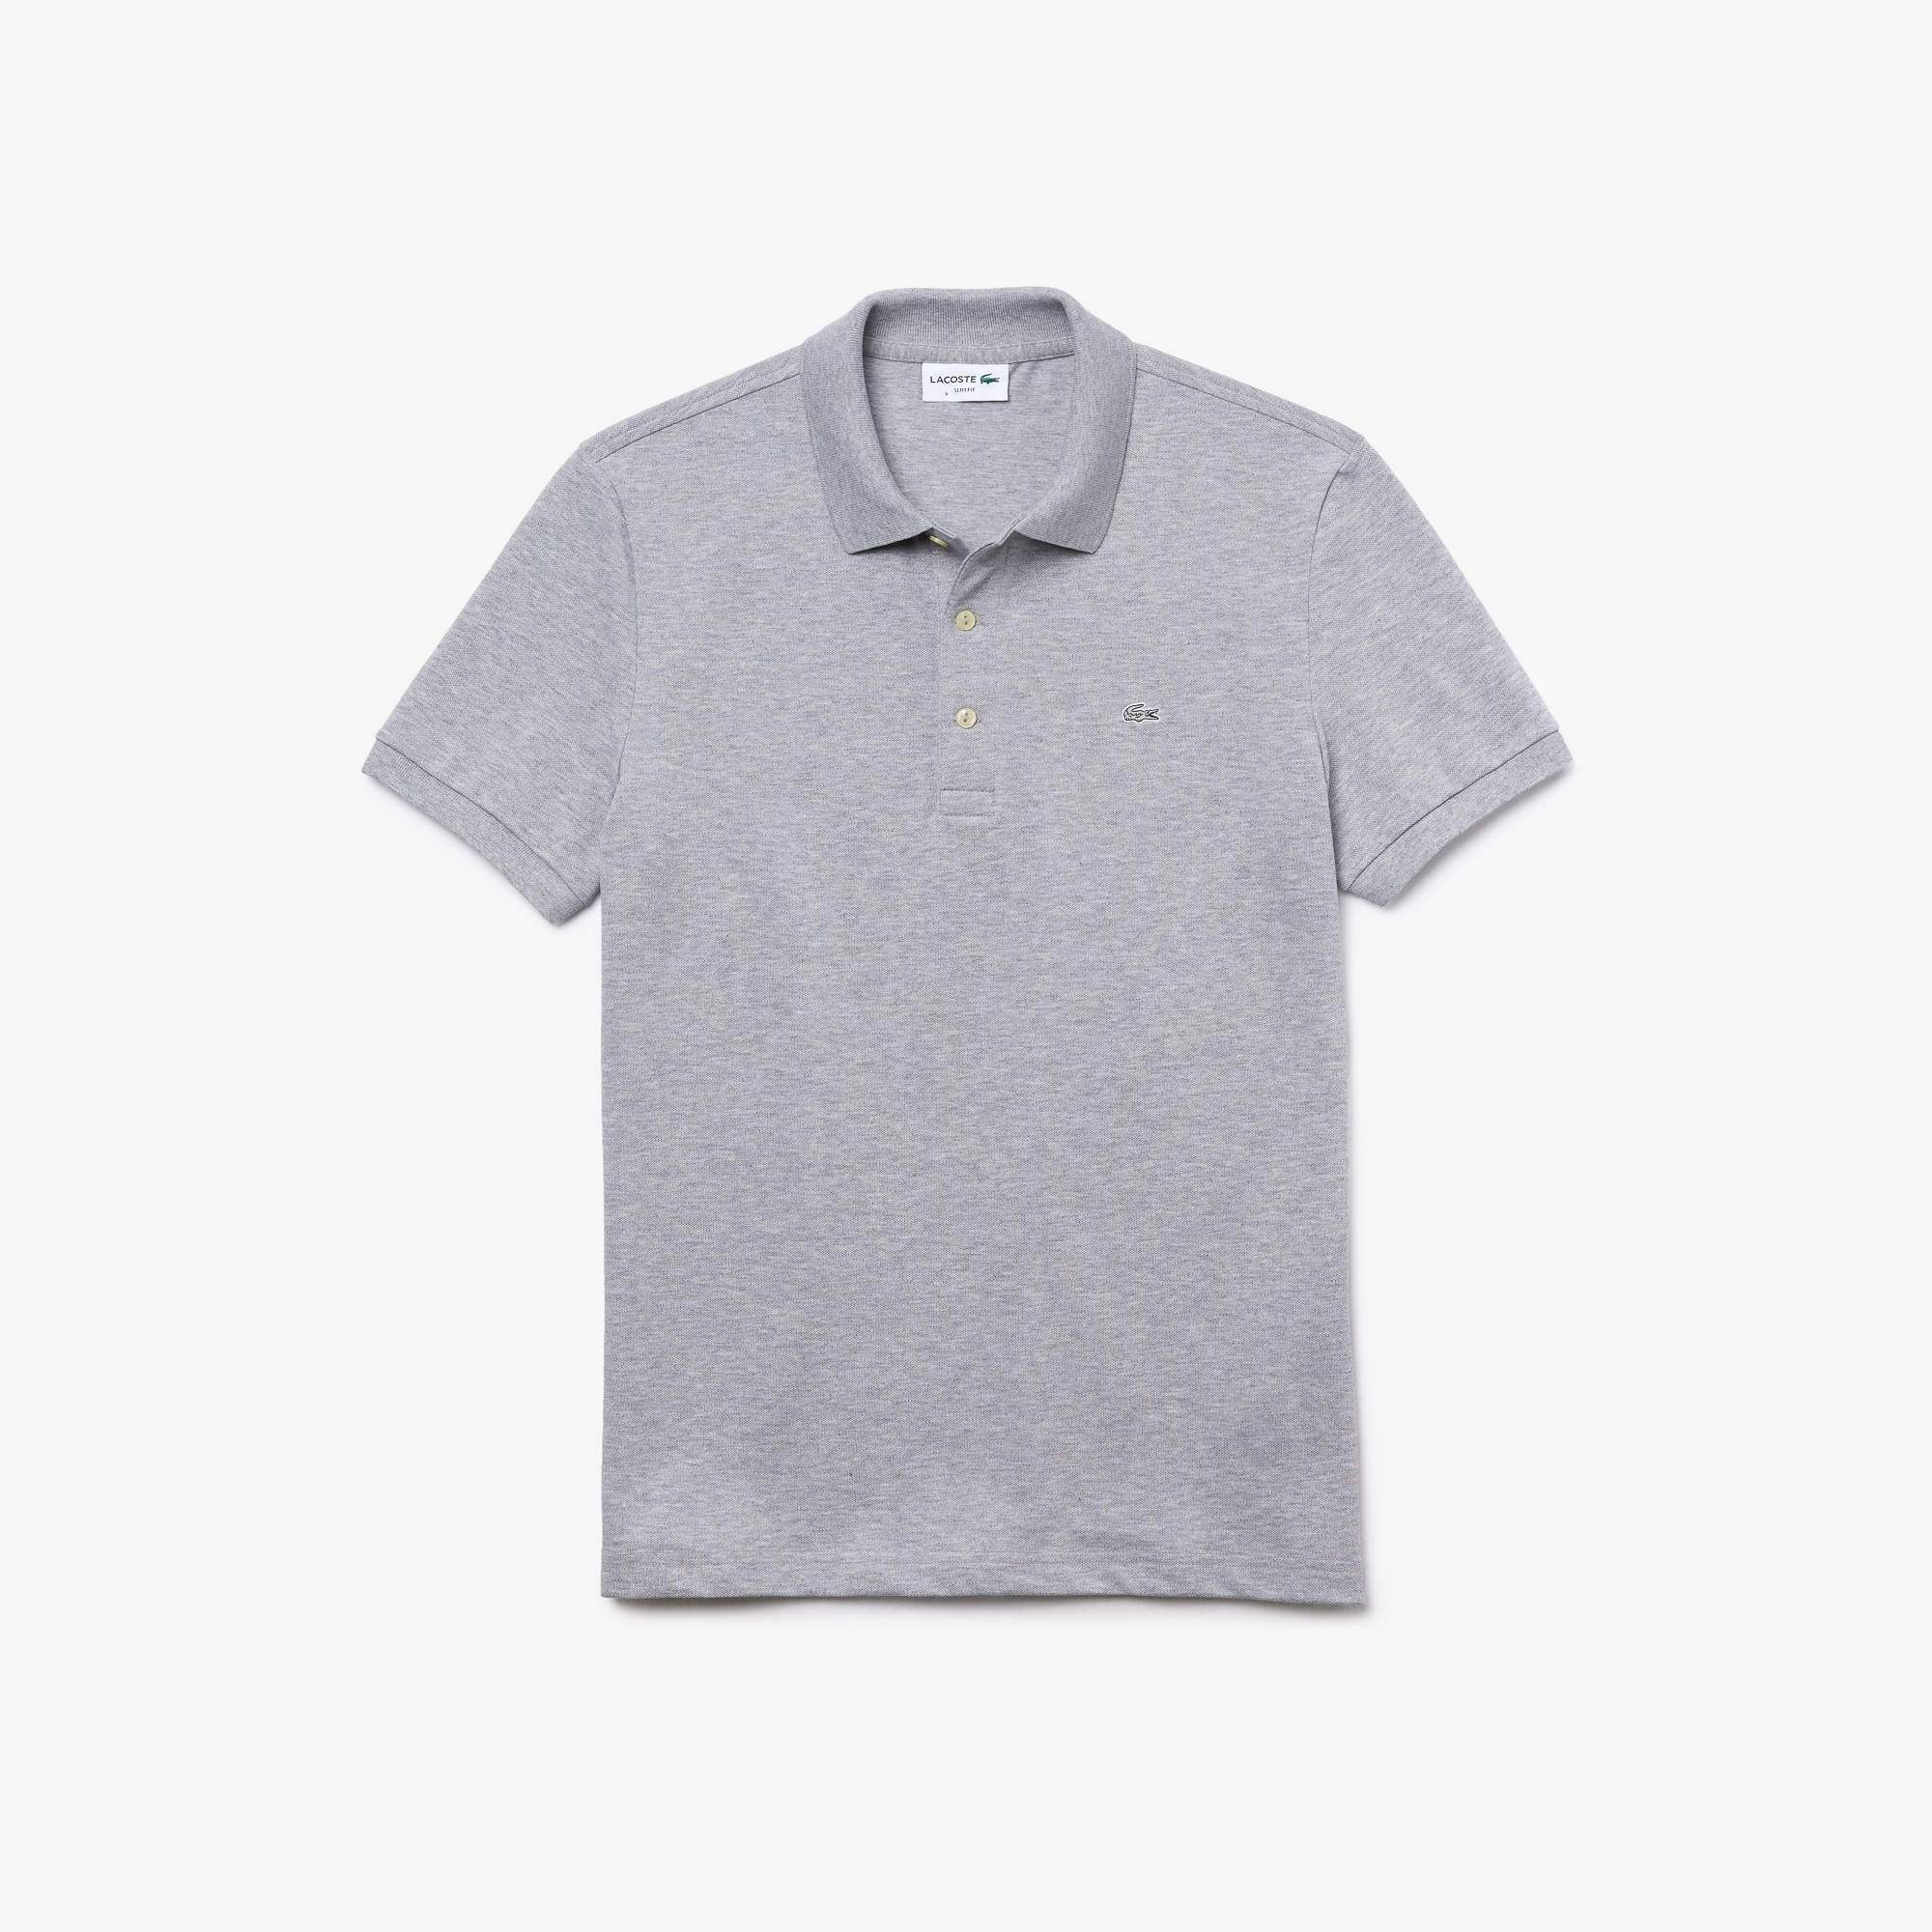 Polo Shirts on Sale   The Lacoste Polo Shirt Sale   LACOSTE 8ca323c0d3